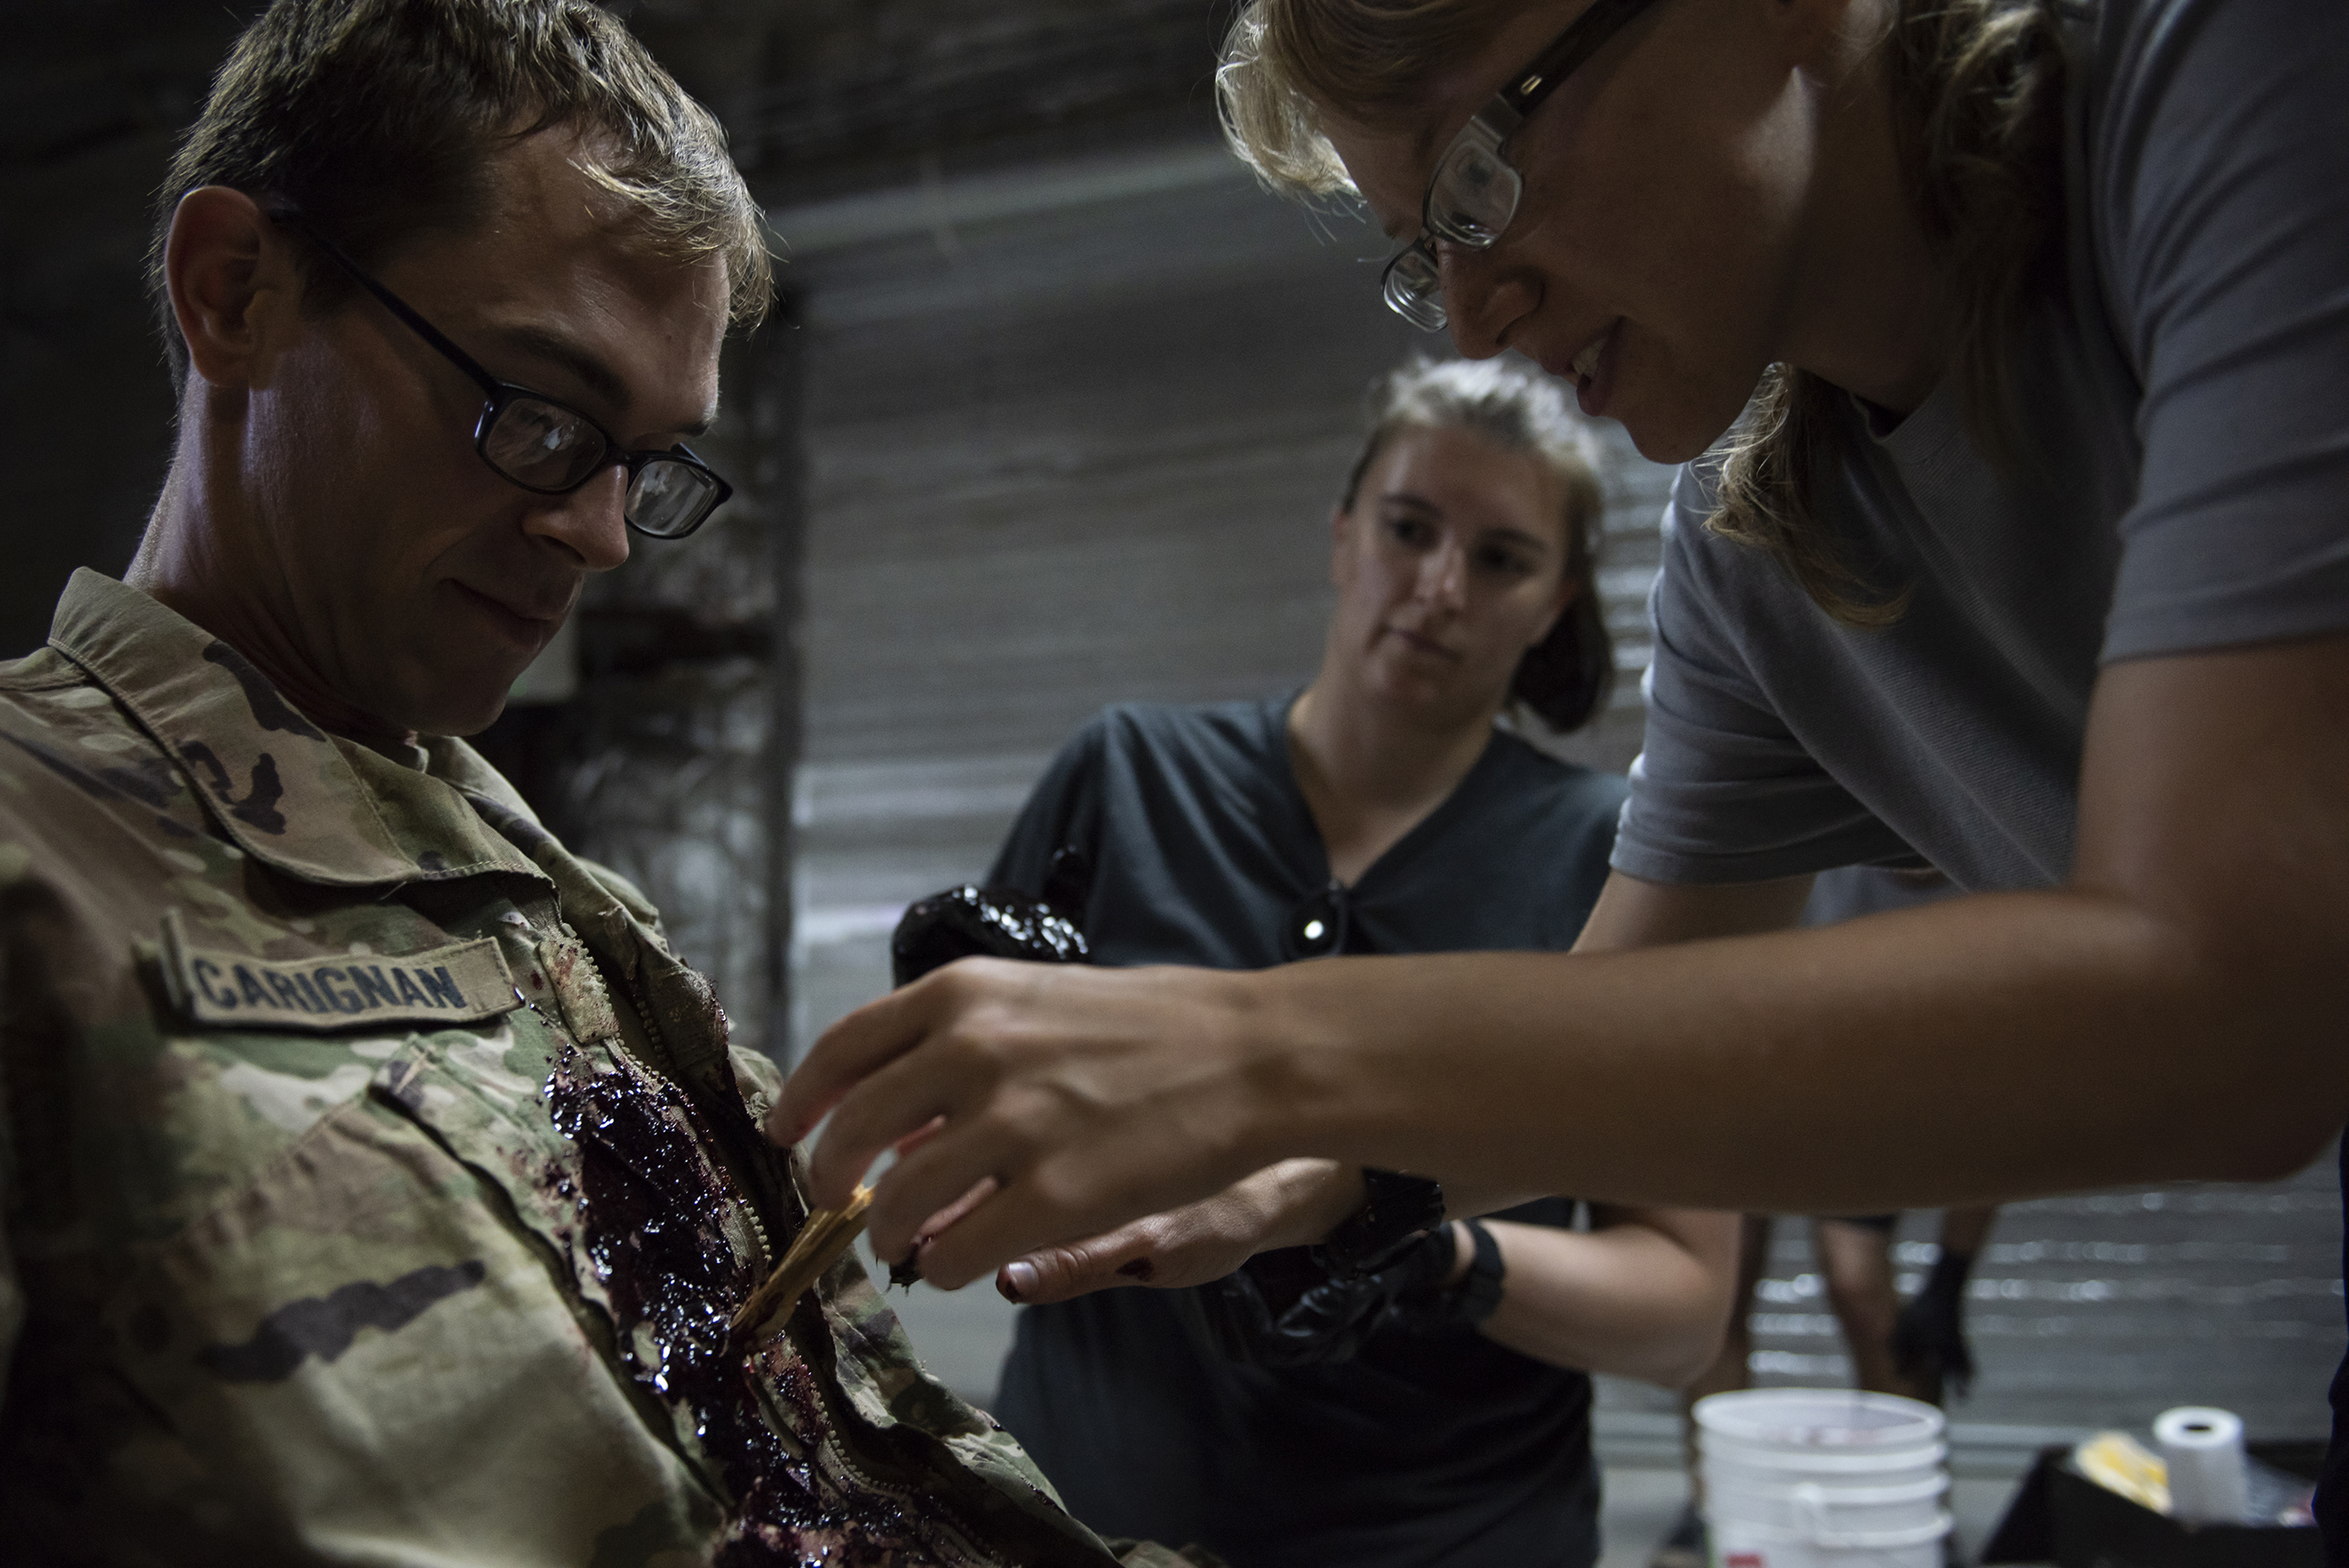 U.S. Air Force Senior Airman Emily Baker, a medical material specialist in the 82nd Expeditionary Rescue Squadron, moulages a simulated chest injury on U.S. Army Sgt. Ryan Carignan, Surgeon Cell, Combined Joint Task Force - Horn of Africa, on Camp Lemonnier, Djibouti, April 24, 2018. As part of a joint mass-casualty training exercise, service members performed various tasks in order to locate, secure and rescue simulated casualties. (U.S. Air National Guard photo by Master Sgt. Sarah Mattison)